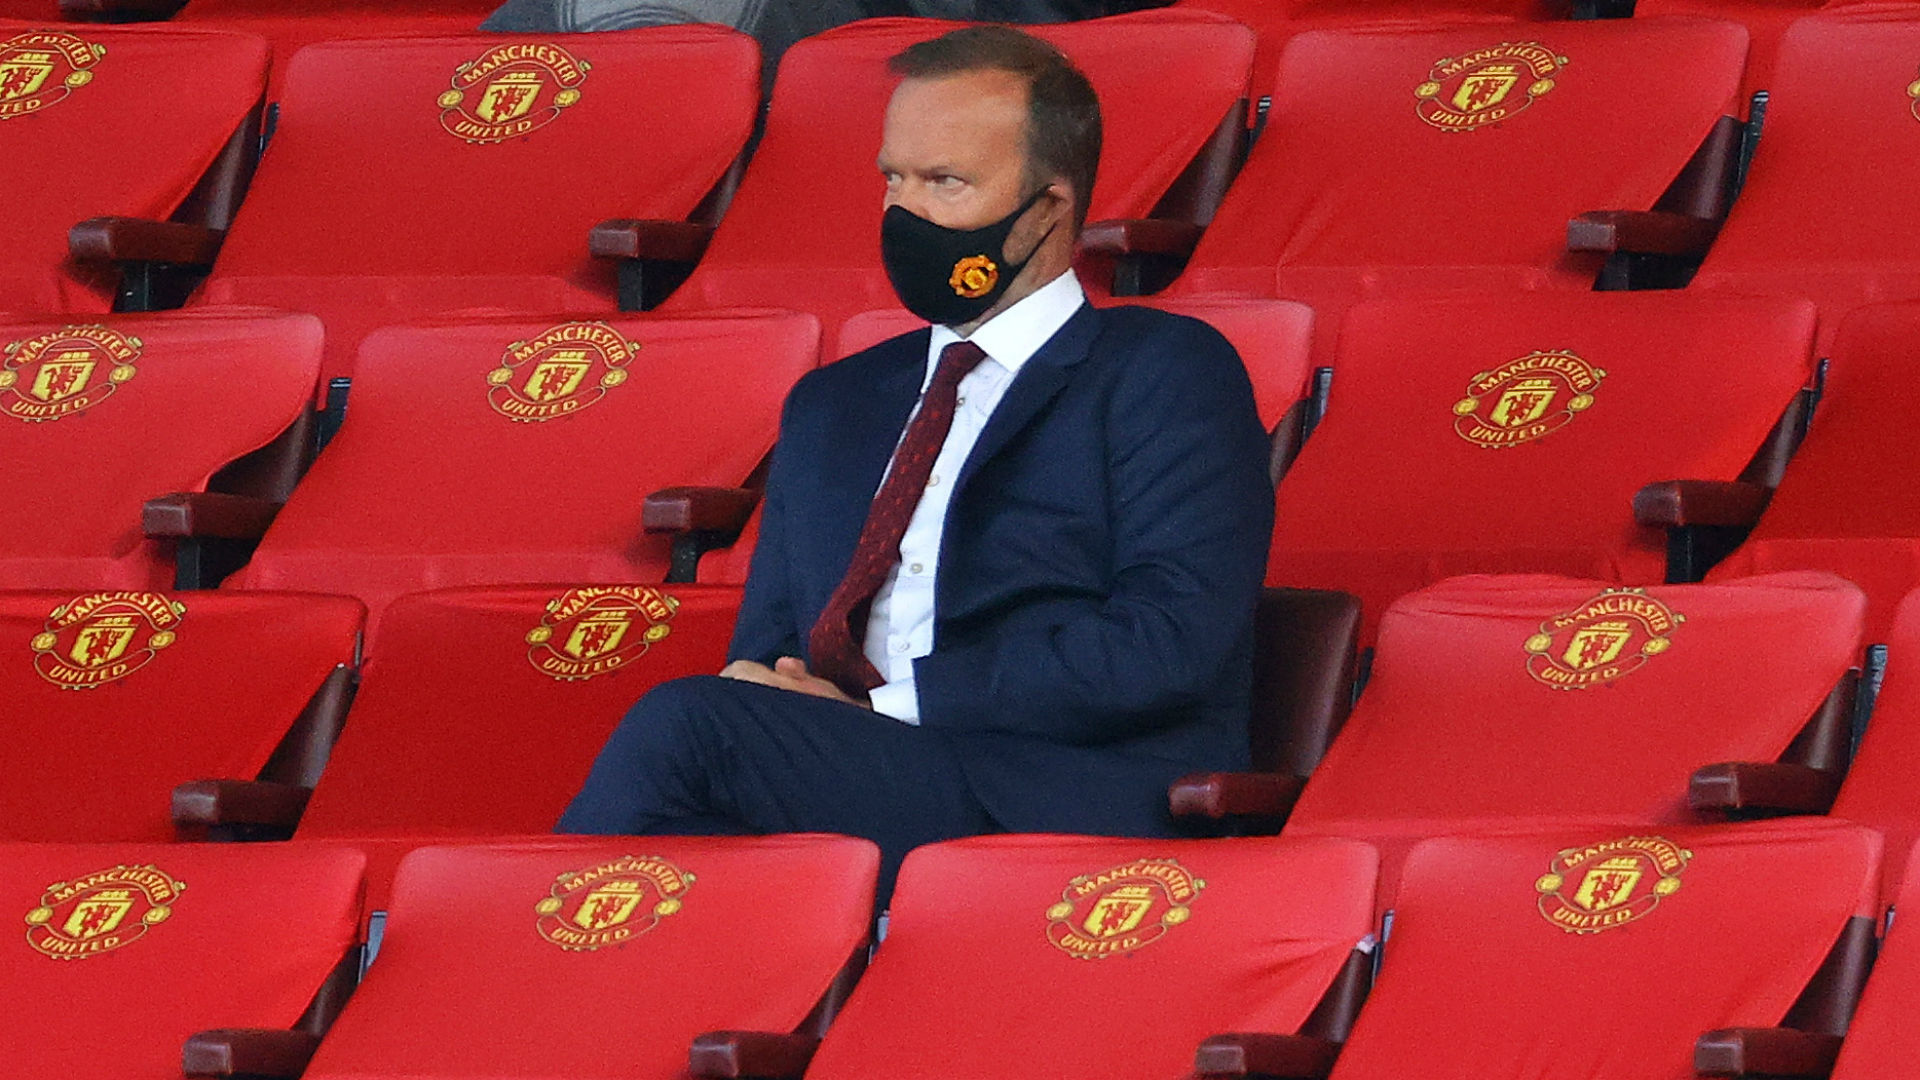 Man Utd committed to 'making the English game stronger' as annual revenue drops